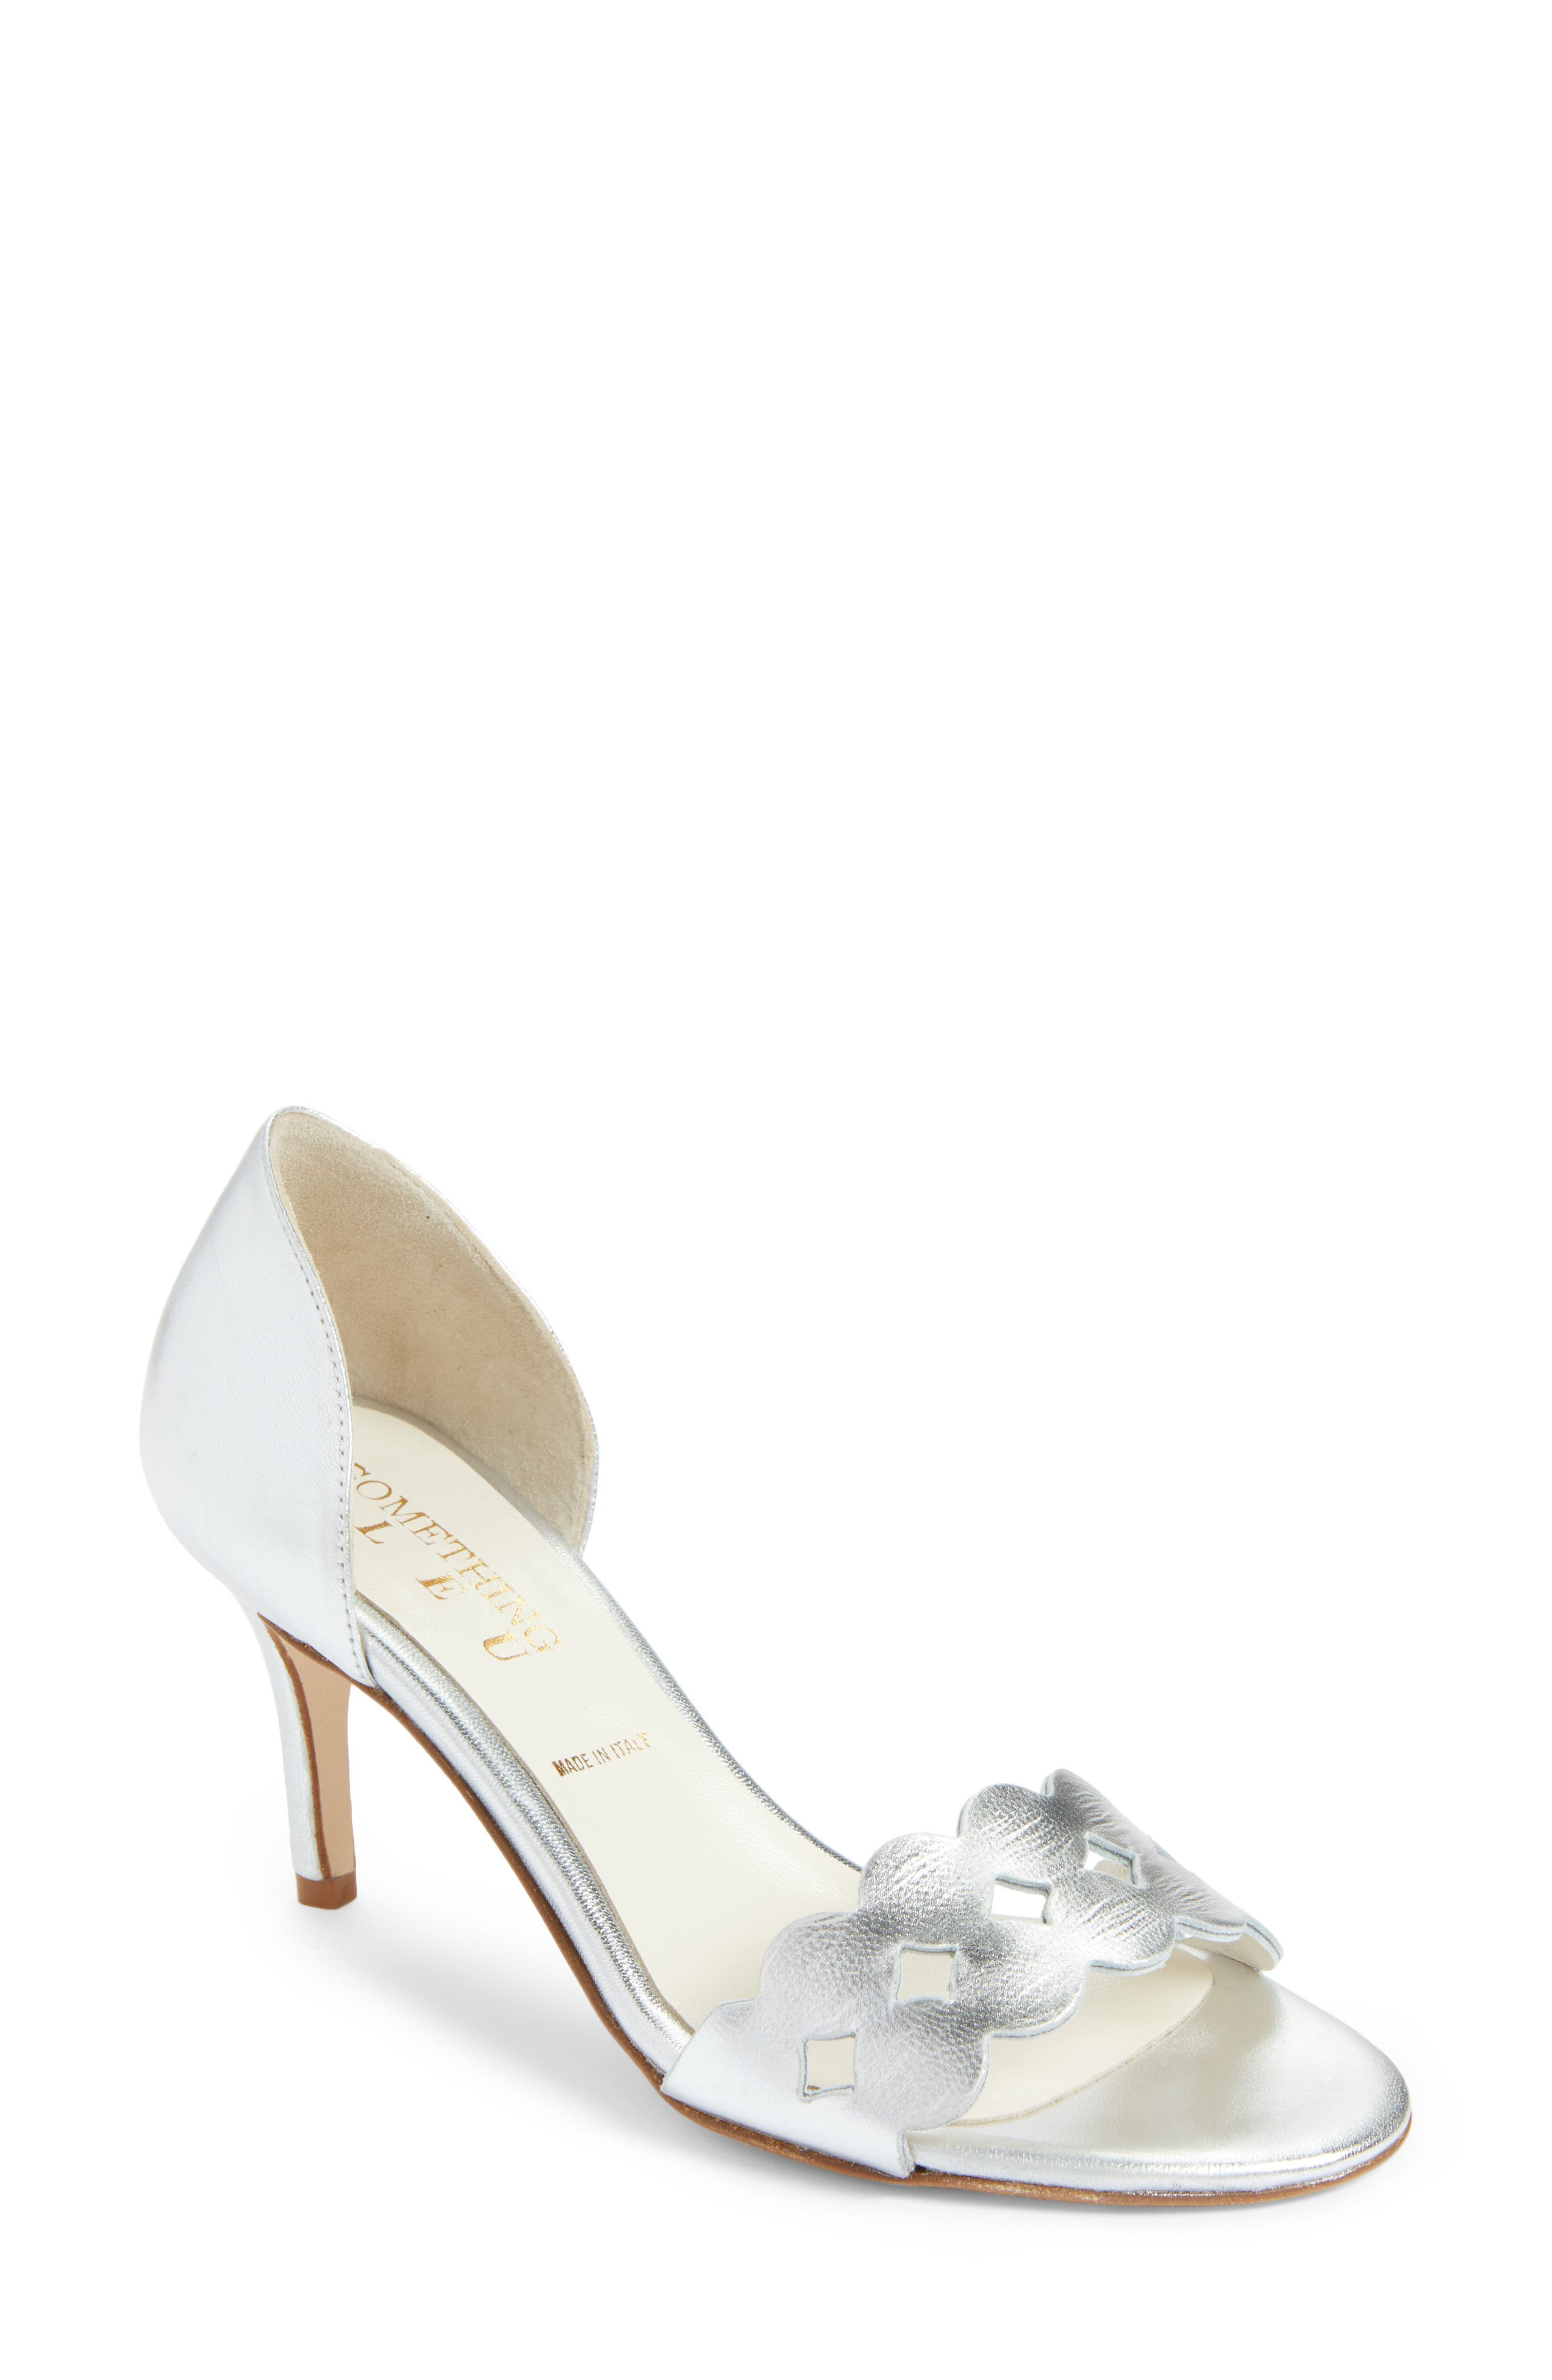 Catherine Cutout Sandal,                         Main,                         color, SILVER METALLIC NAPPA